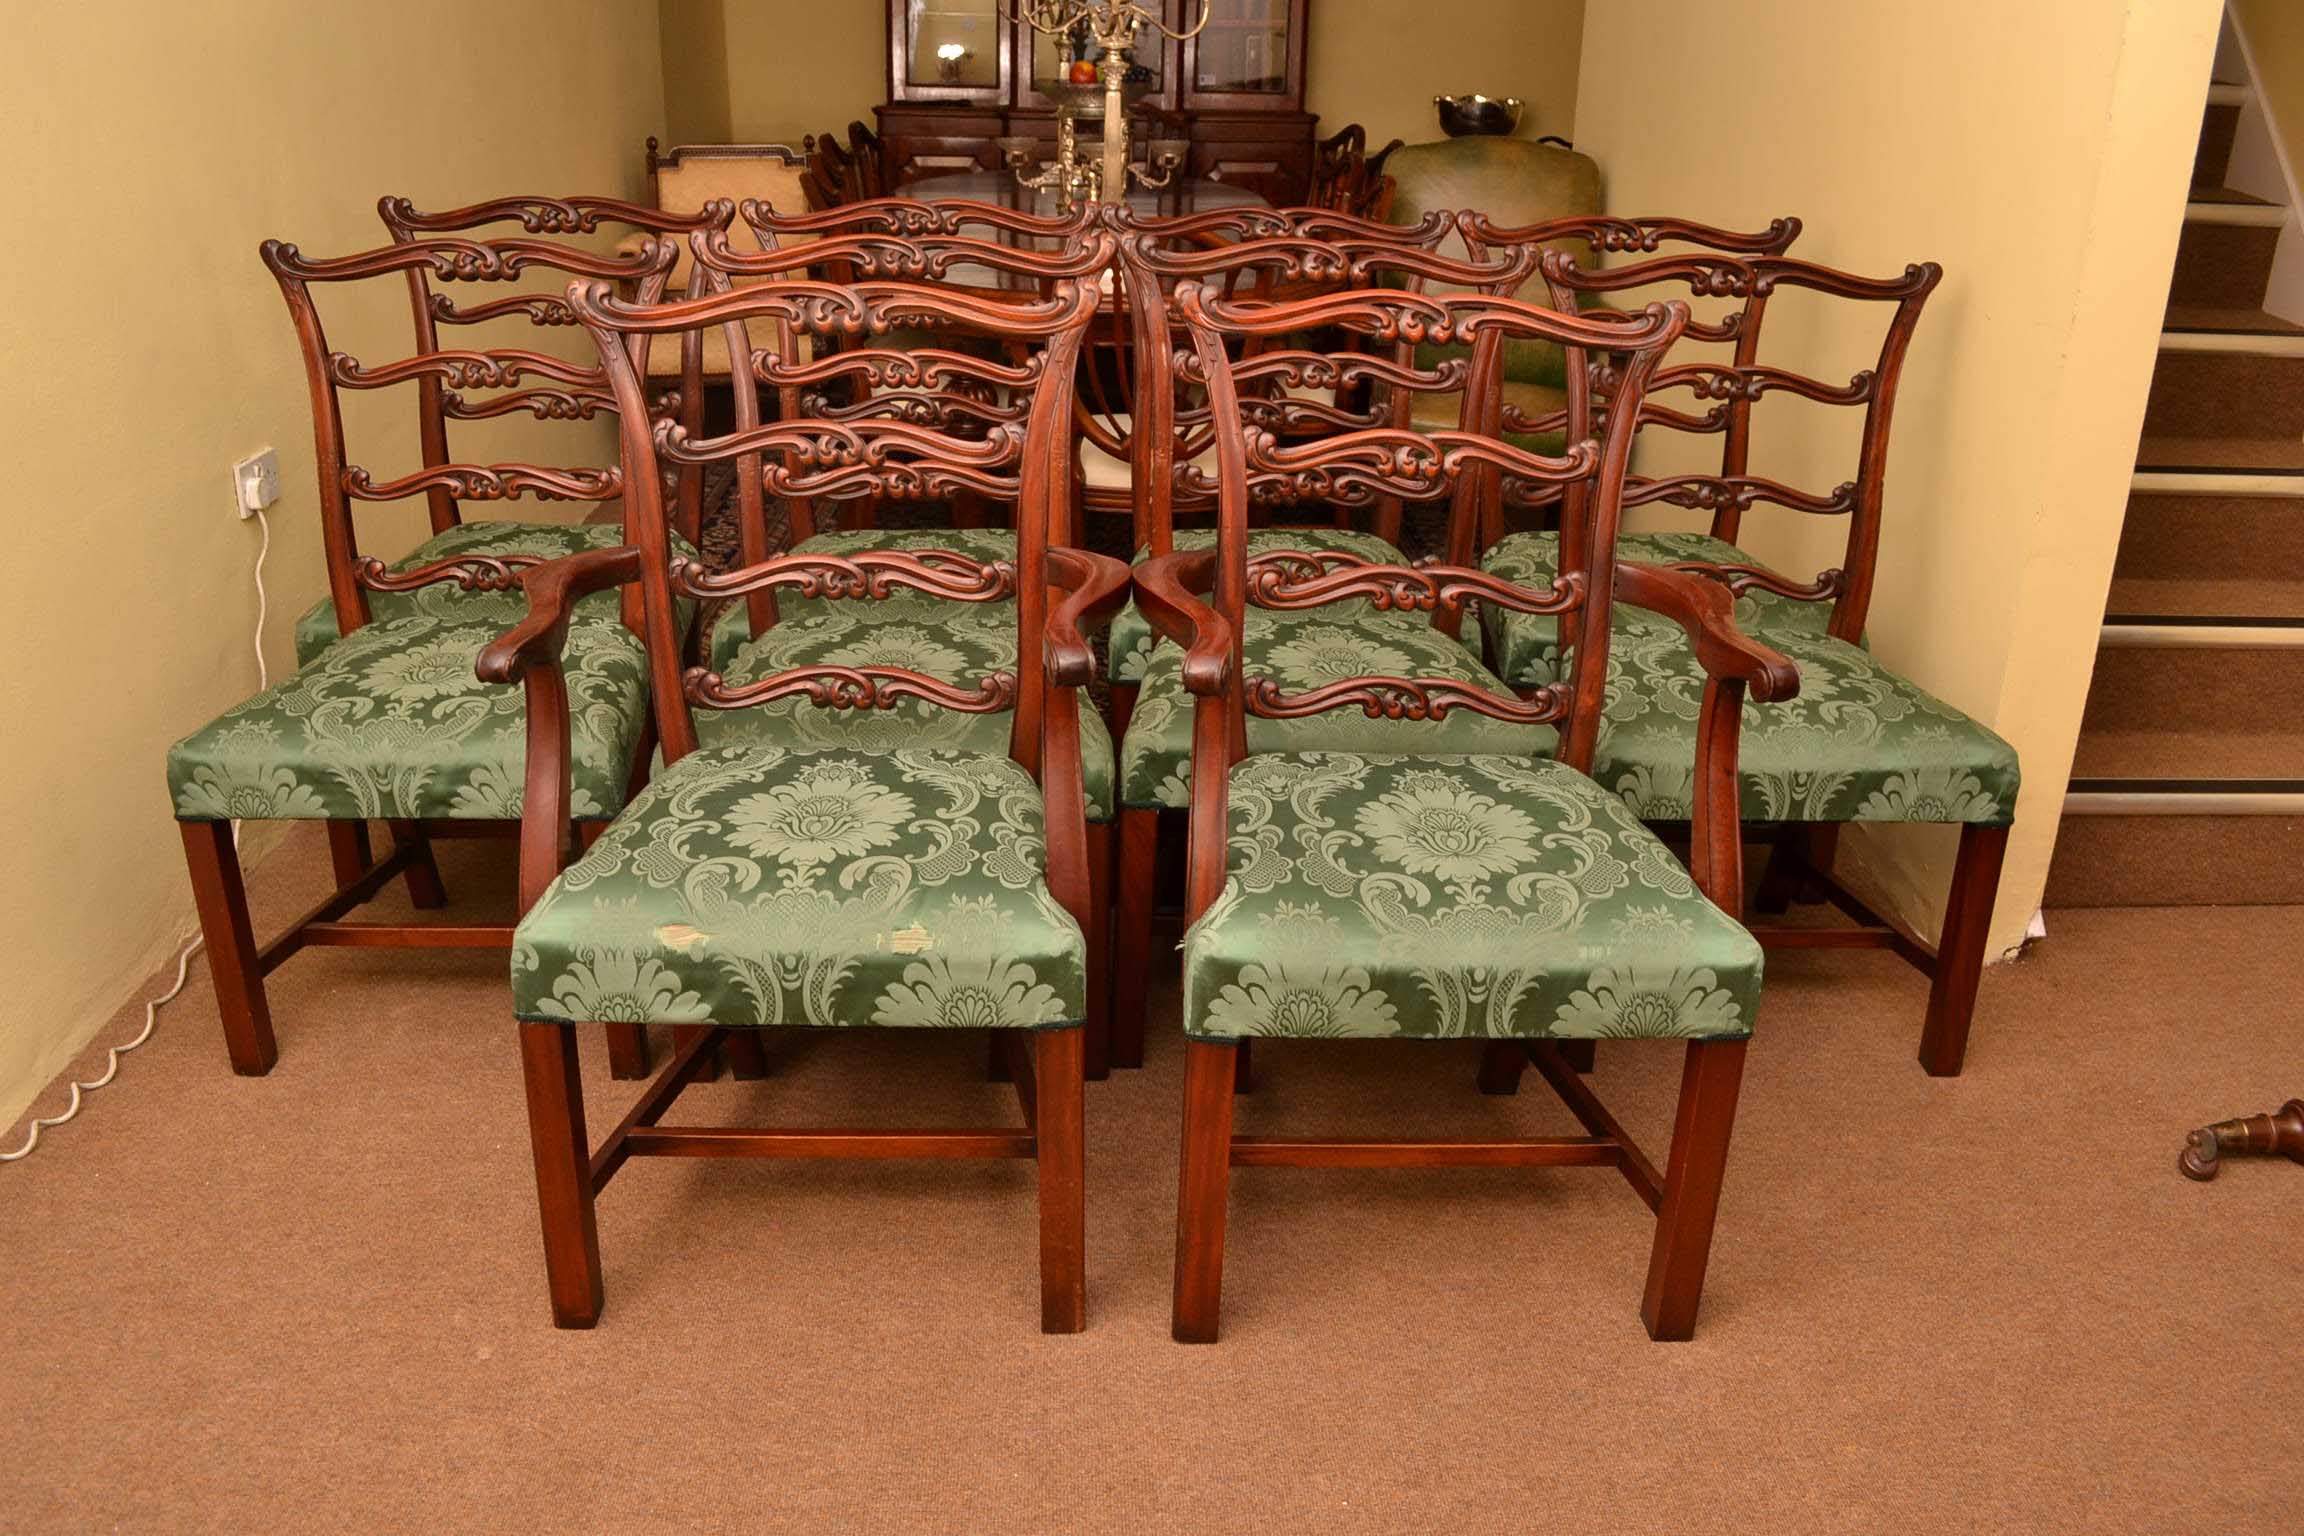 10 Vintage Chippendale Ladderback Dining Chairs